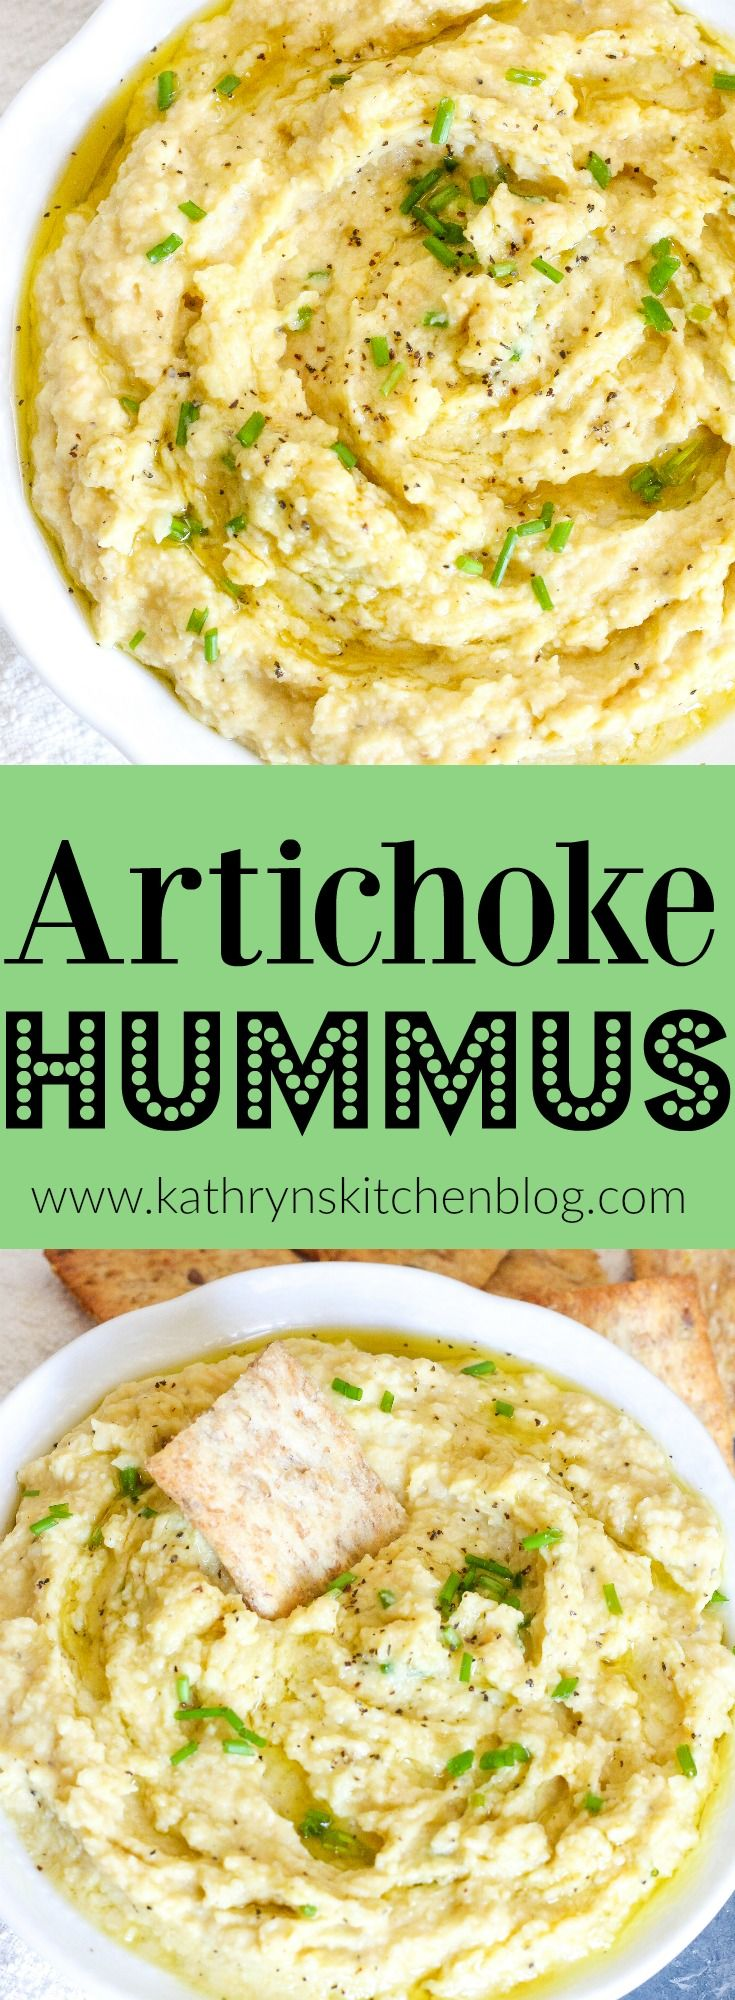 Homemade Artichoke Hummus// Kathryn's Kitchen Blog